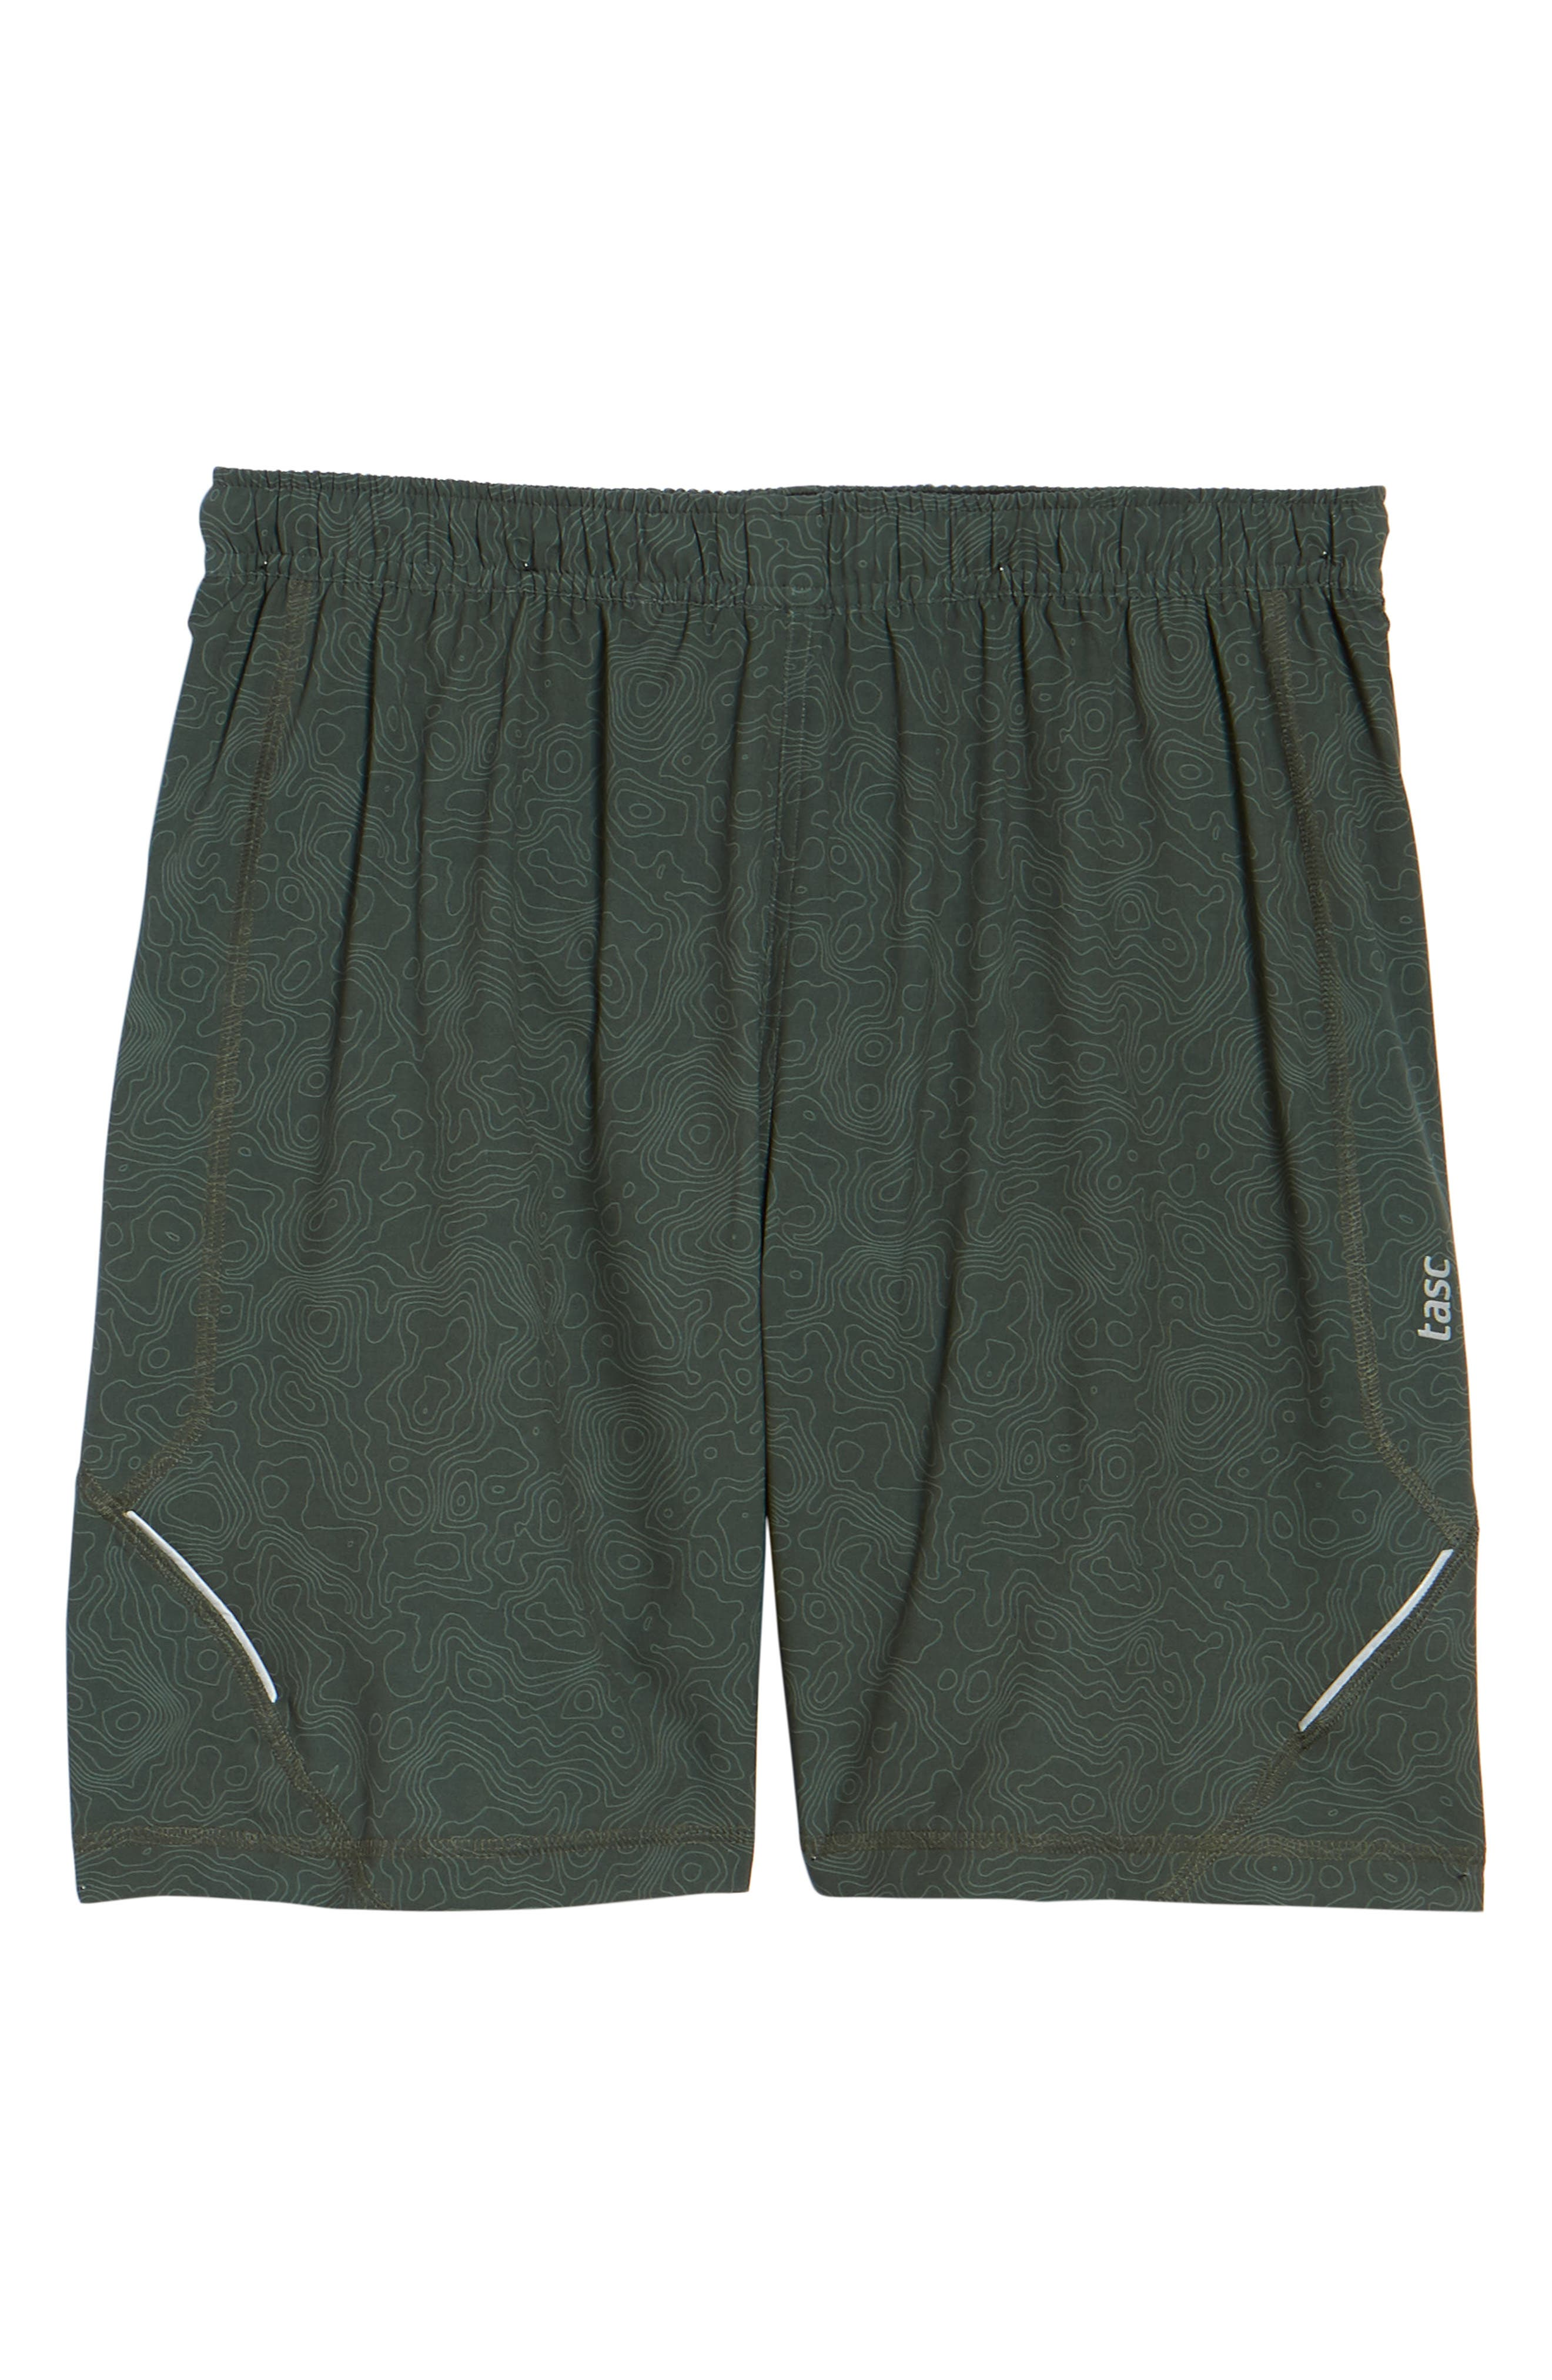 Propulsion Athletic Shorts,                             Alternate thumbnail 5, color,                             Topography